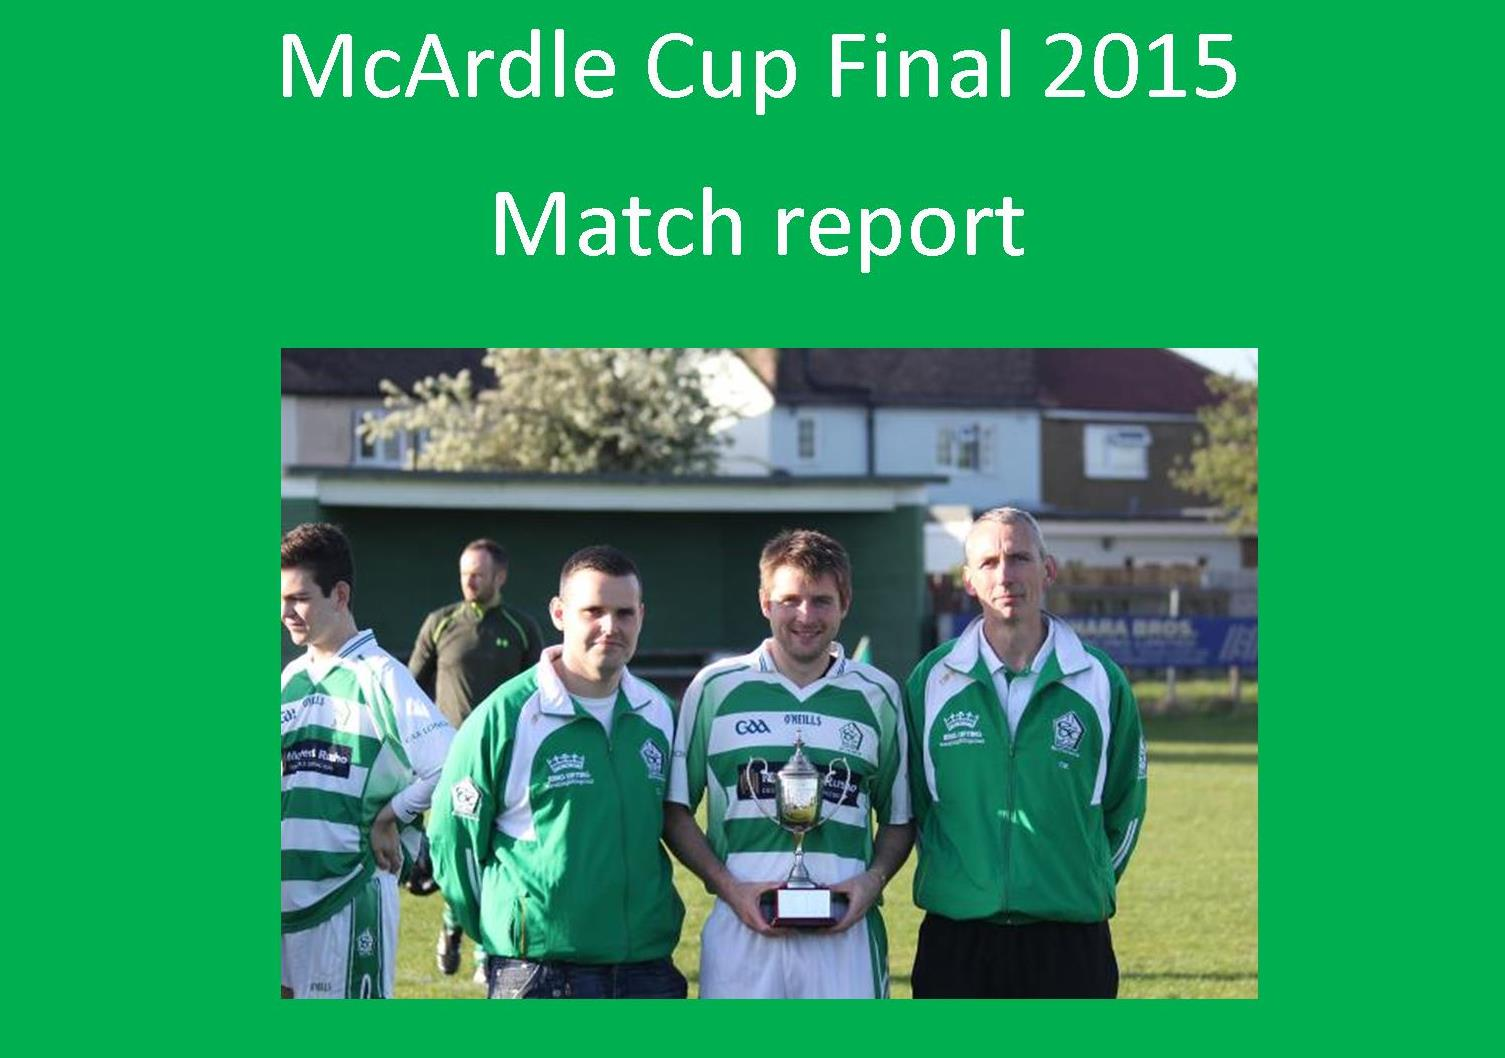 McArdle Cup Final 2015. London's best GAA club. A Gaelic football club to be proud of.